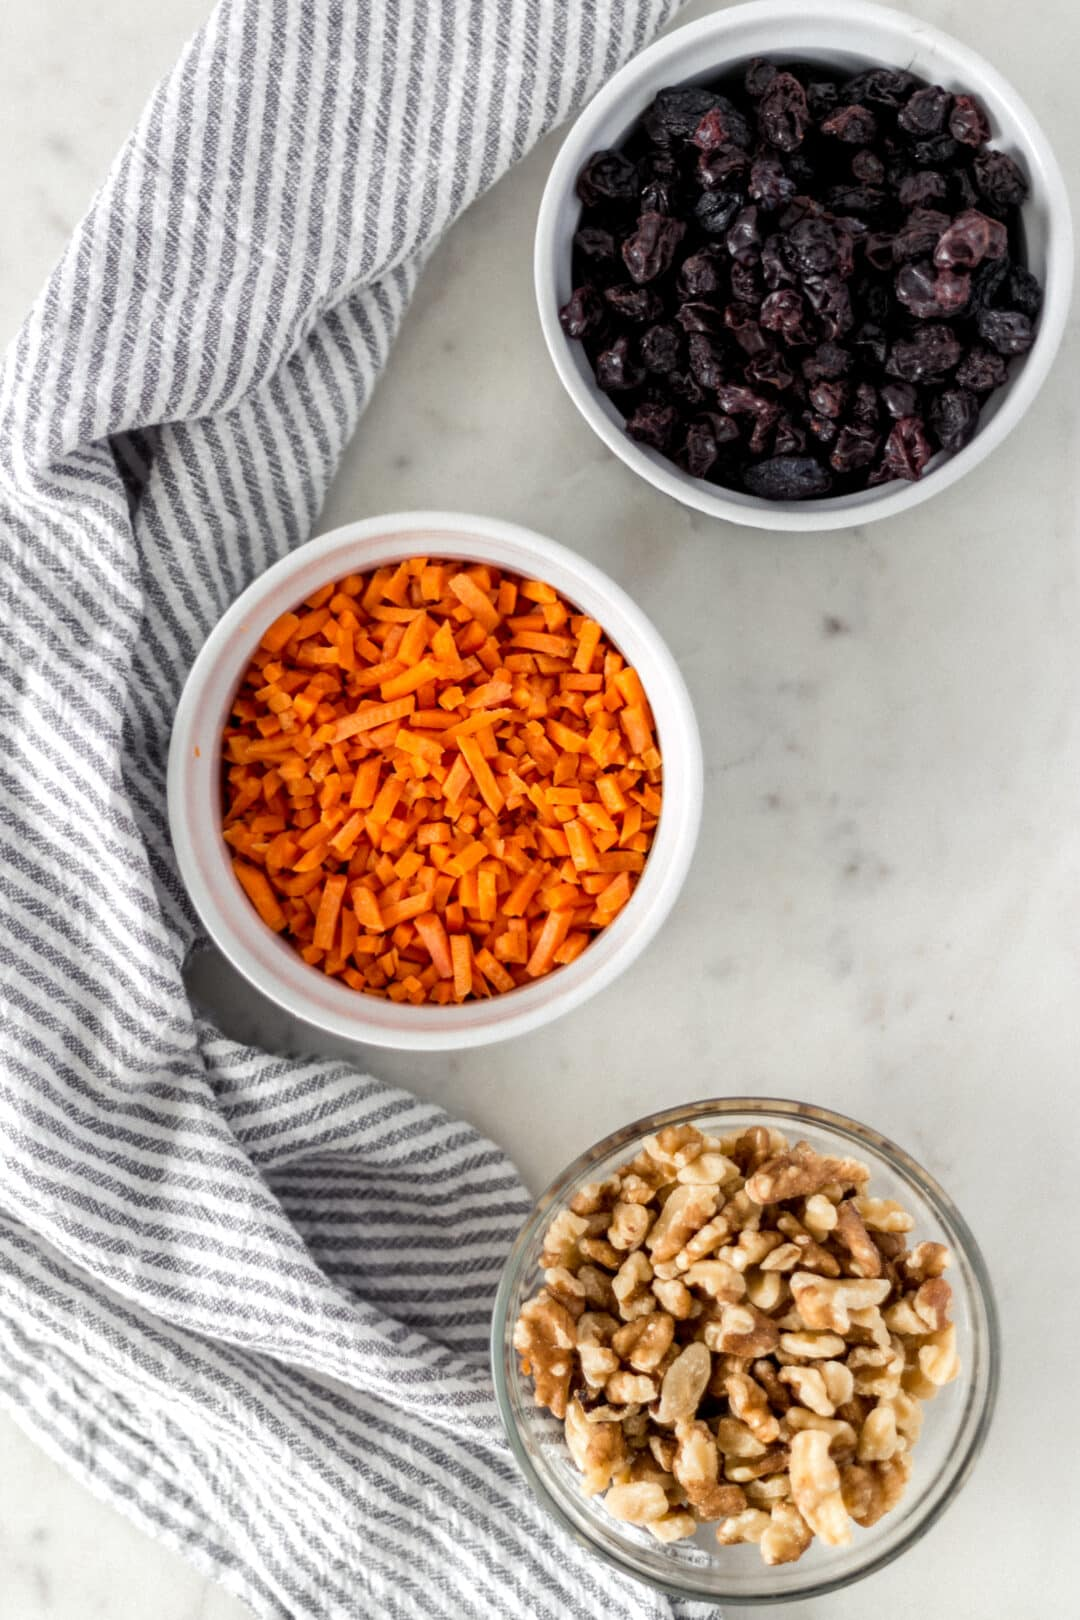 small bowls with shredded carrot, walnuts, and raisins